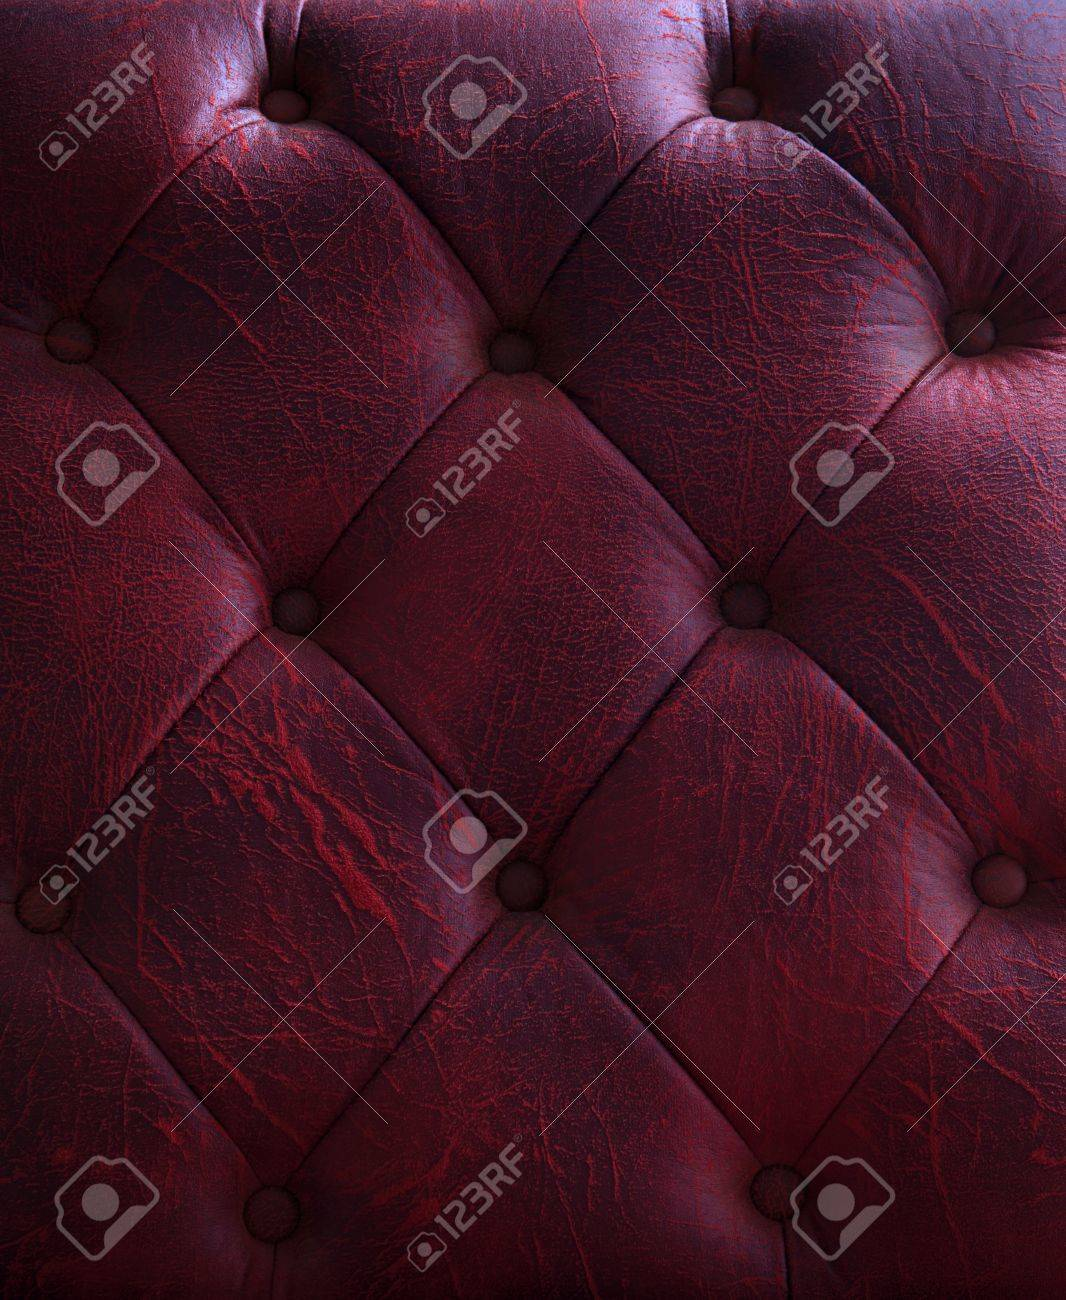 pattern and surface of luxury sofa leather with button on